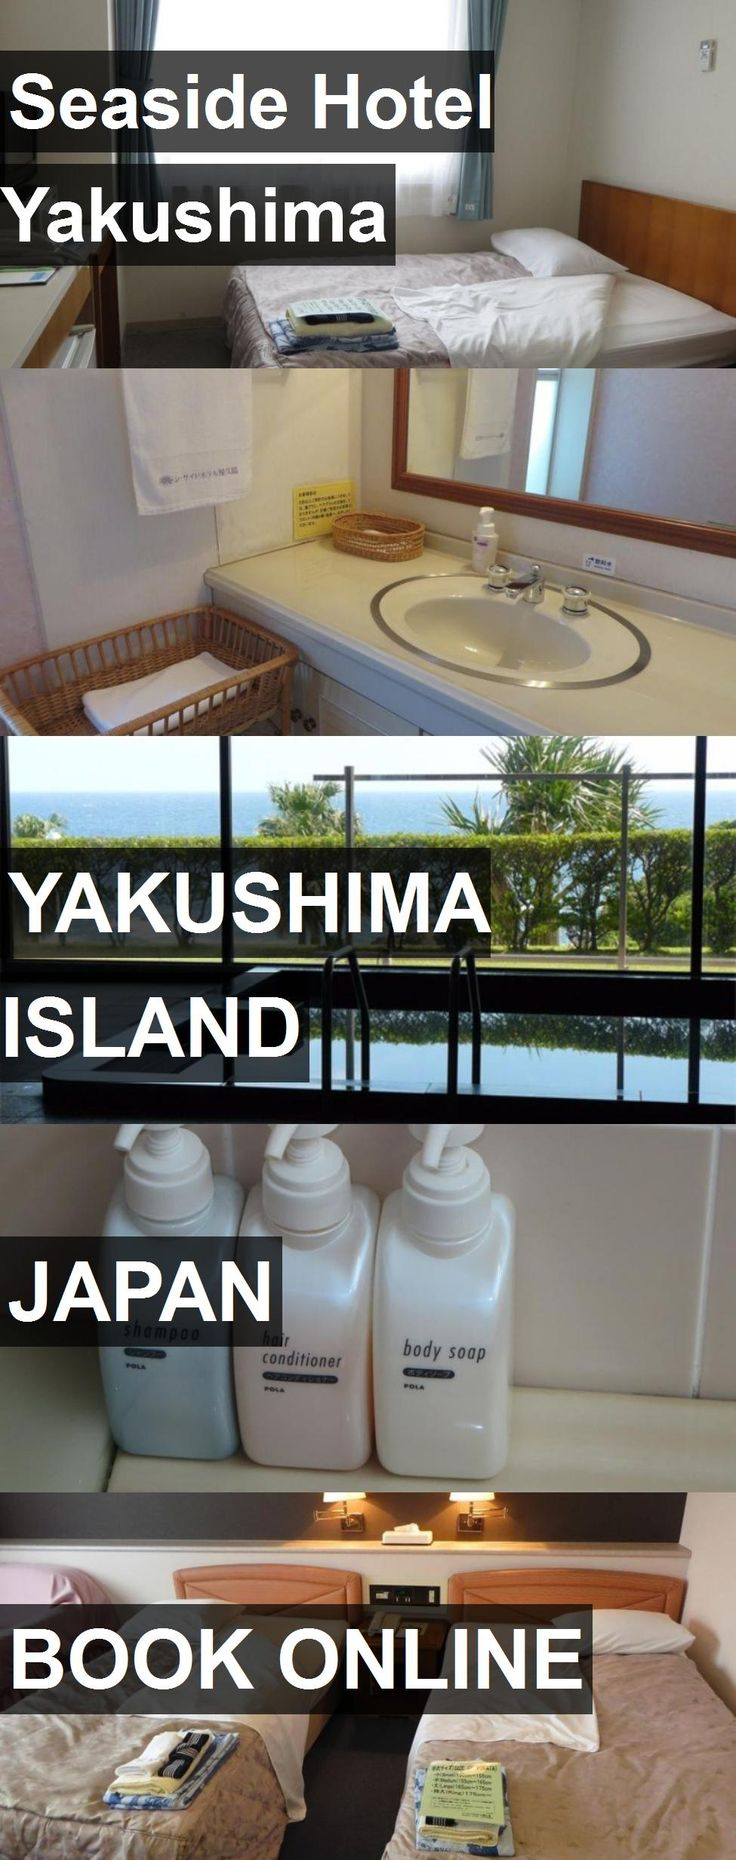 Hotel Seaside Hotel Yakushima in Yakushima Island, Japan. For more information, photos, reviews and best prices please follow the link. #Japan #YakushimaIsland #SeasideHotelYakushima #hotel #travel #vacation